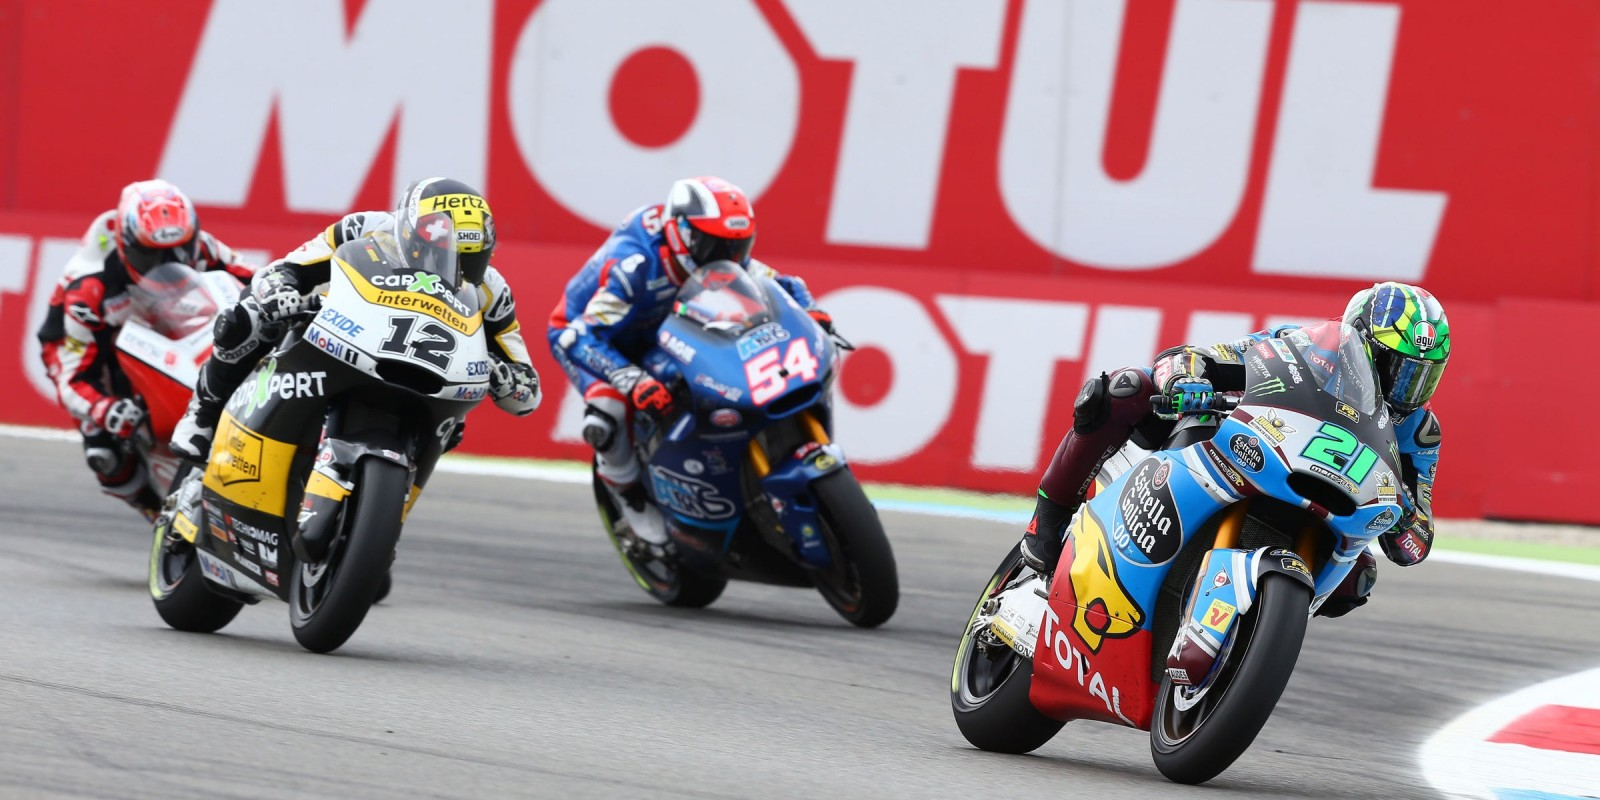 Action shots of Motorcycling Grand Prix in Assen